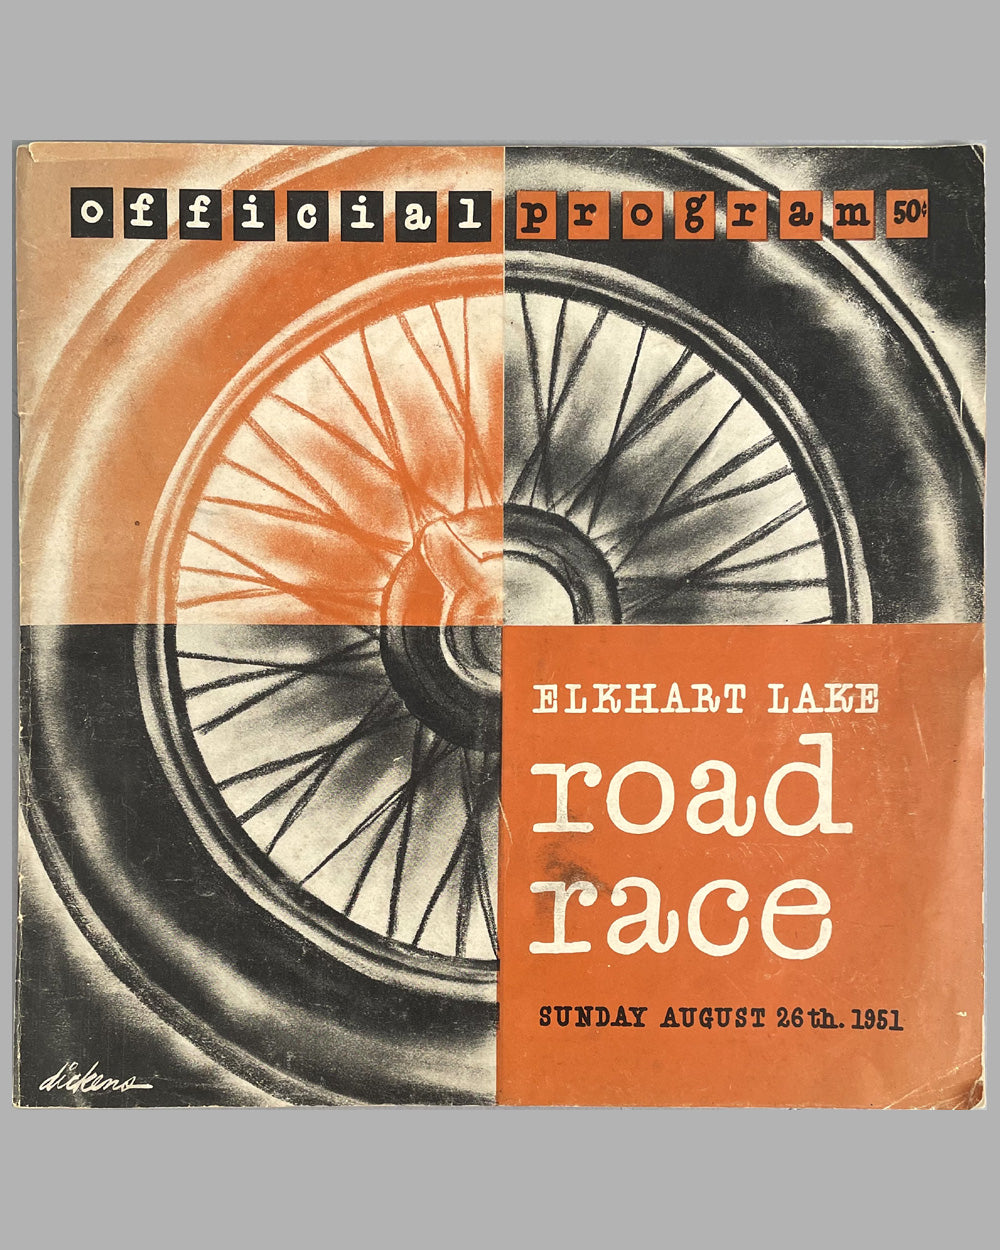 2 - Early Elkhart Lake road race program - August 26th, 1951